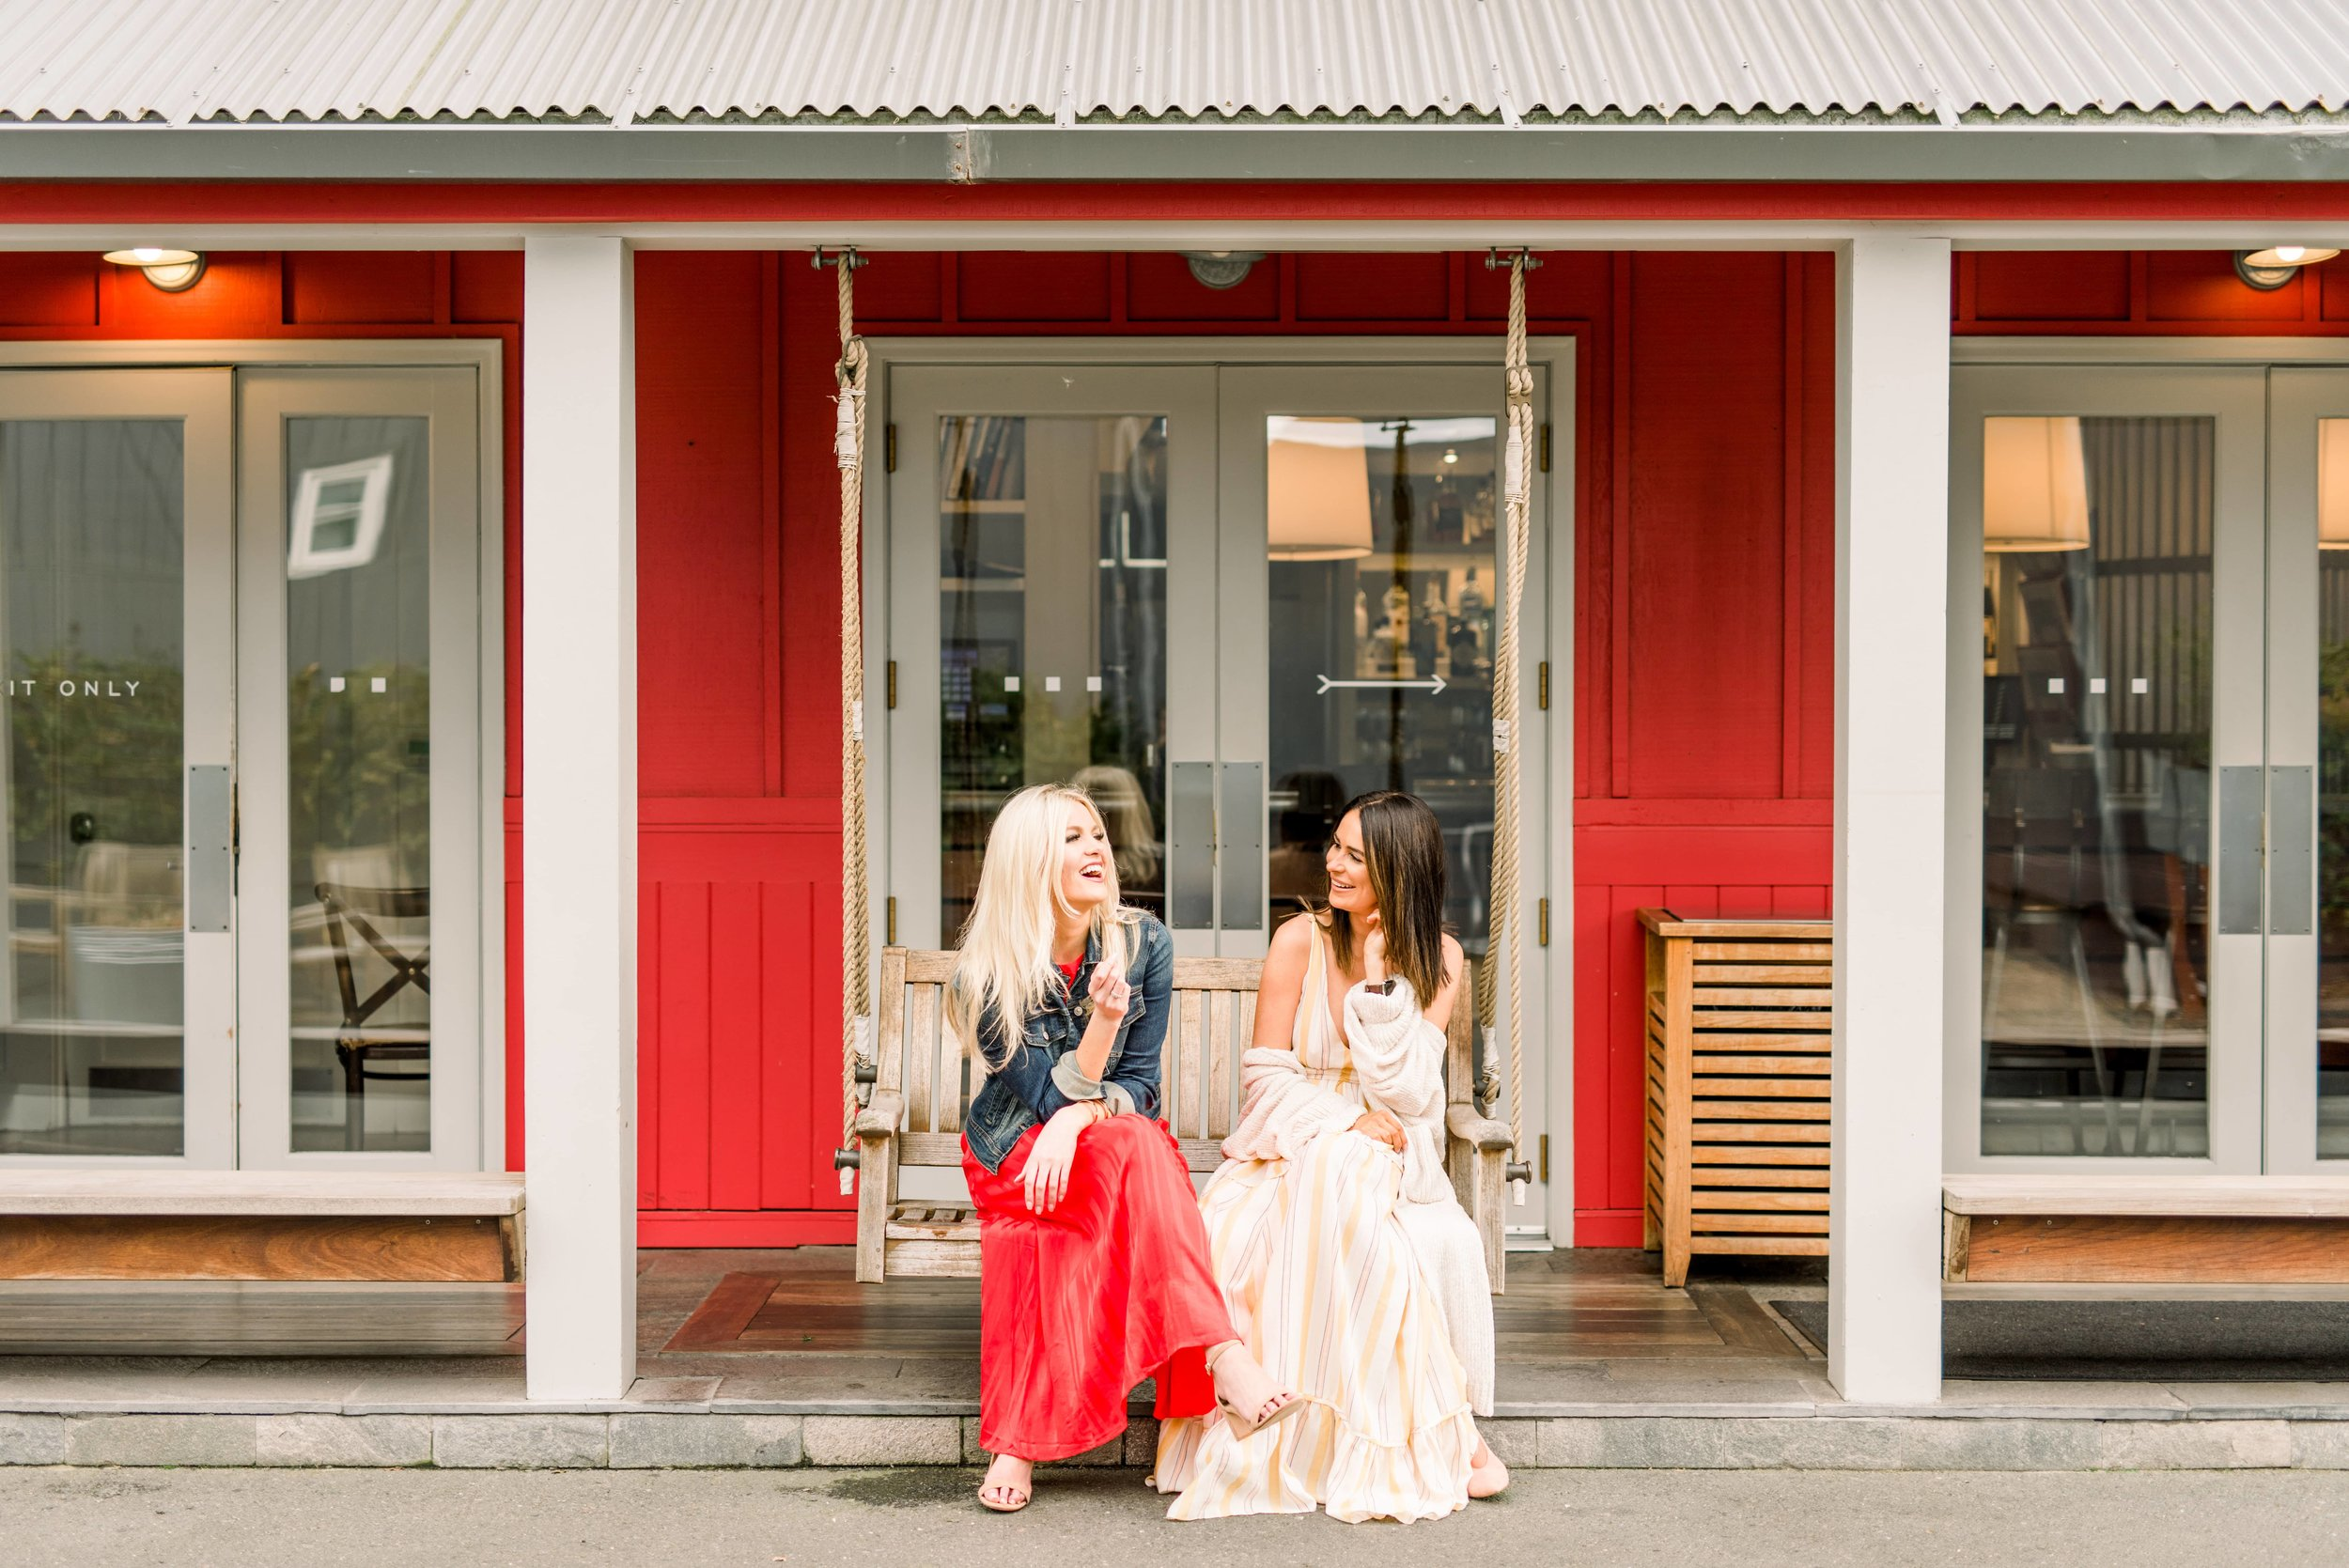 Candice and McKenna_Janine_Licare_Photography-66-min.jpg